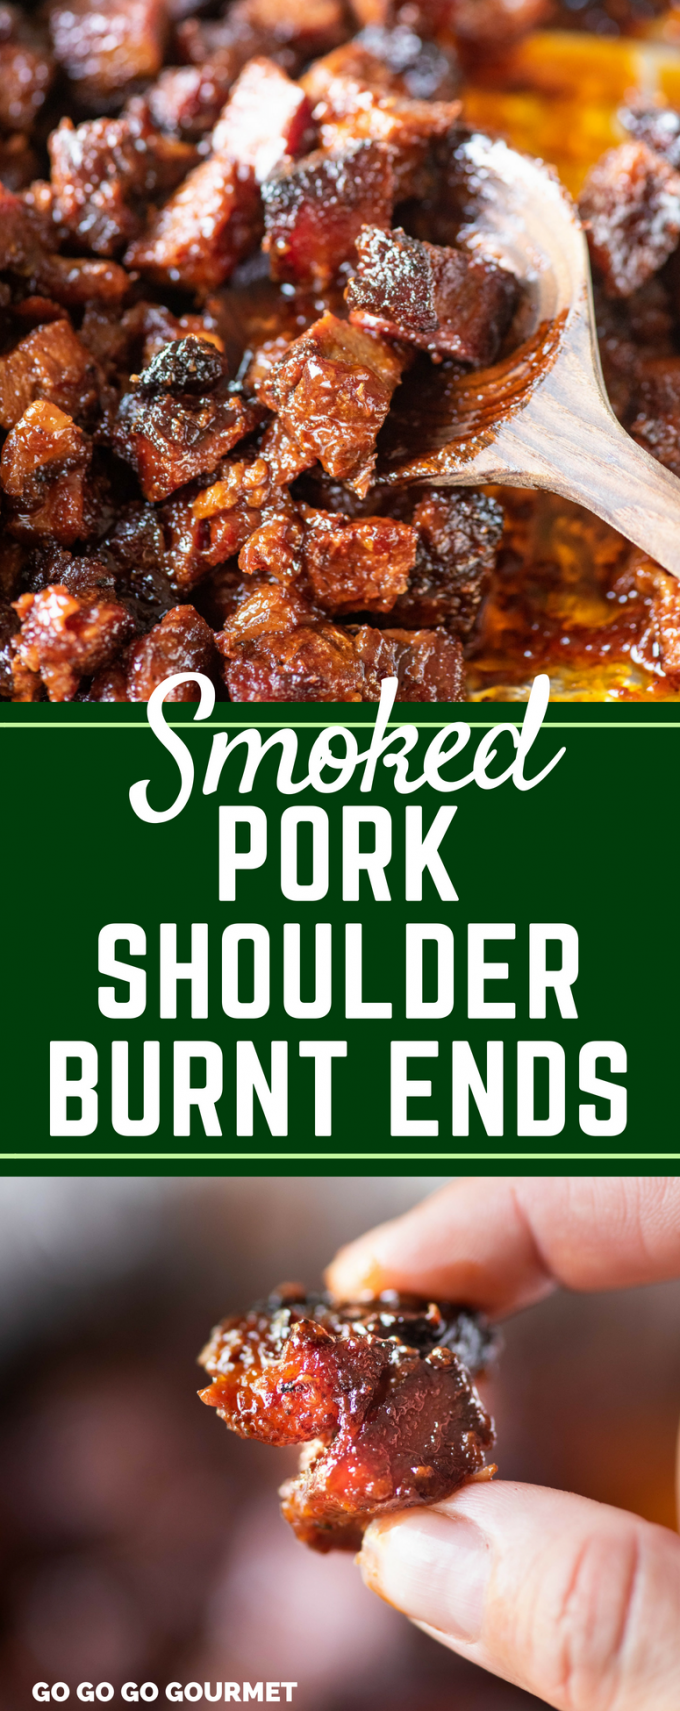 These smoked burnt ends are made with pork shoulder- so easy, juicy and tender! With only a few ingredients, this is one of the best smoked recipes! #smokedporkshoulderburntends #porkshoulderrecipes #porkrecipes #gogogogourmet via @gogogogourmet